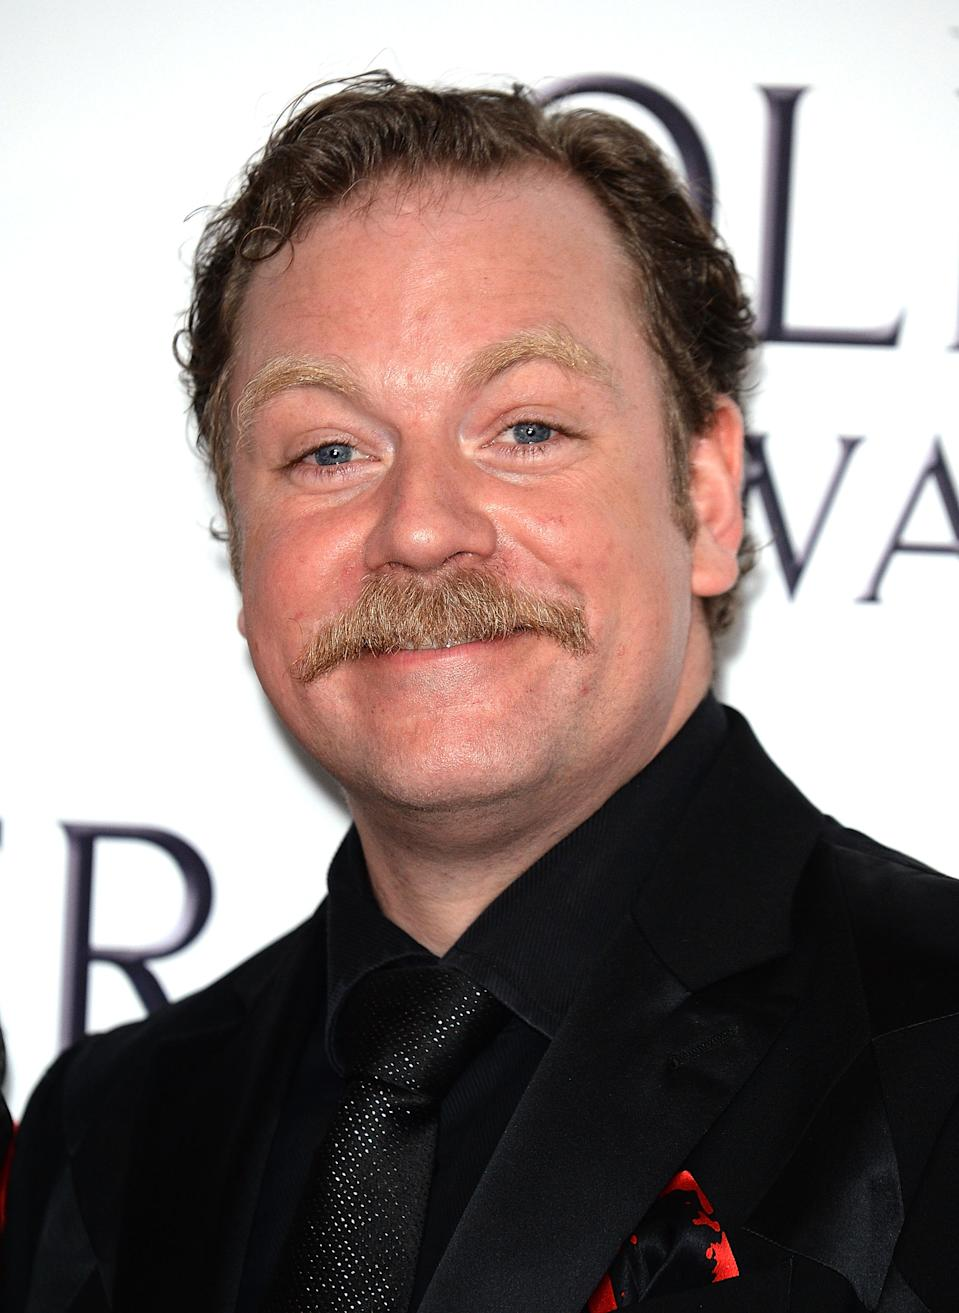 LONDON, ENGLAND - APRIL 09: Rufus Hound poses in the winners room at The Olivier Awards 2017 at Royal Albert Hall on April 9, 2017 in London, England. (Photo by Eamonn M. McCormack/Getty Images)